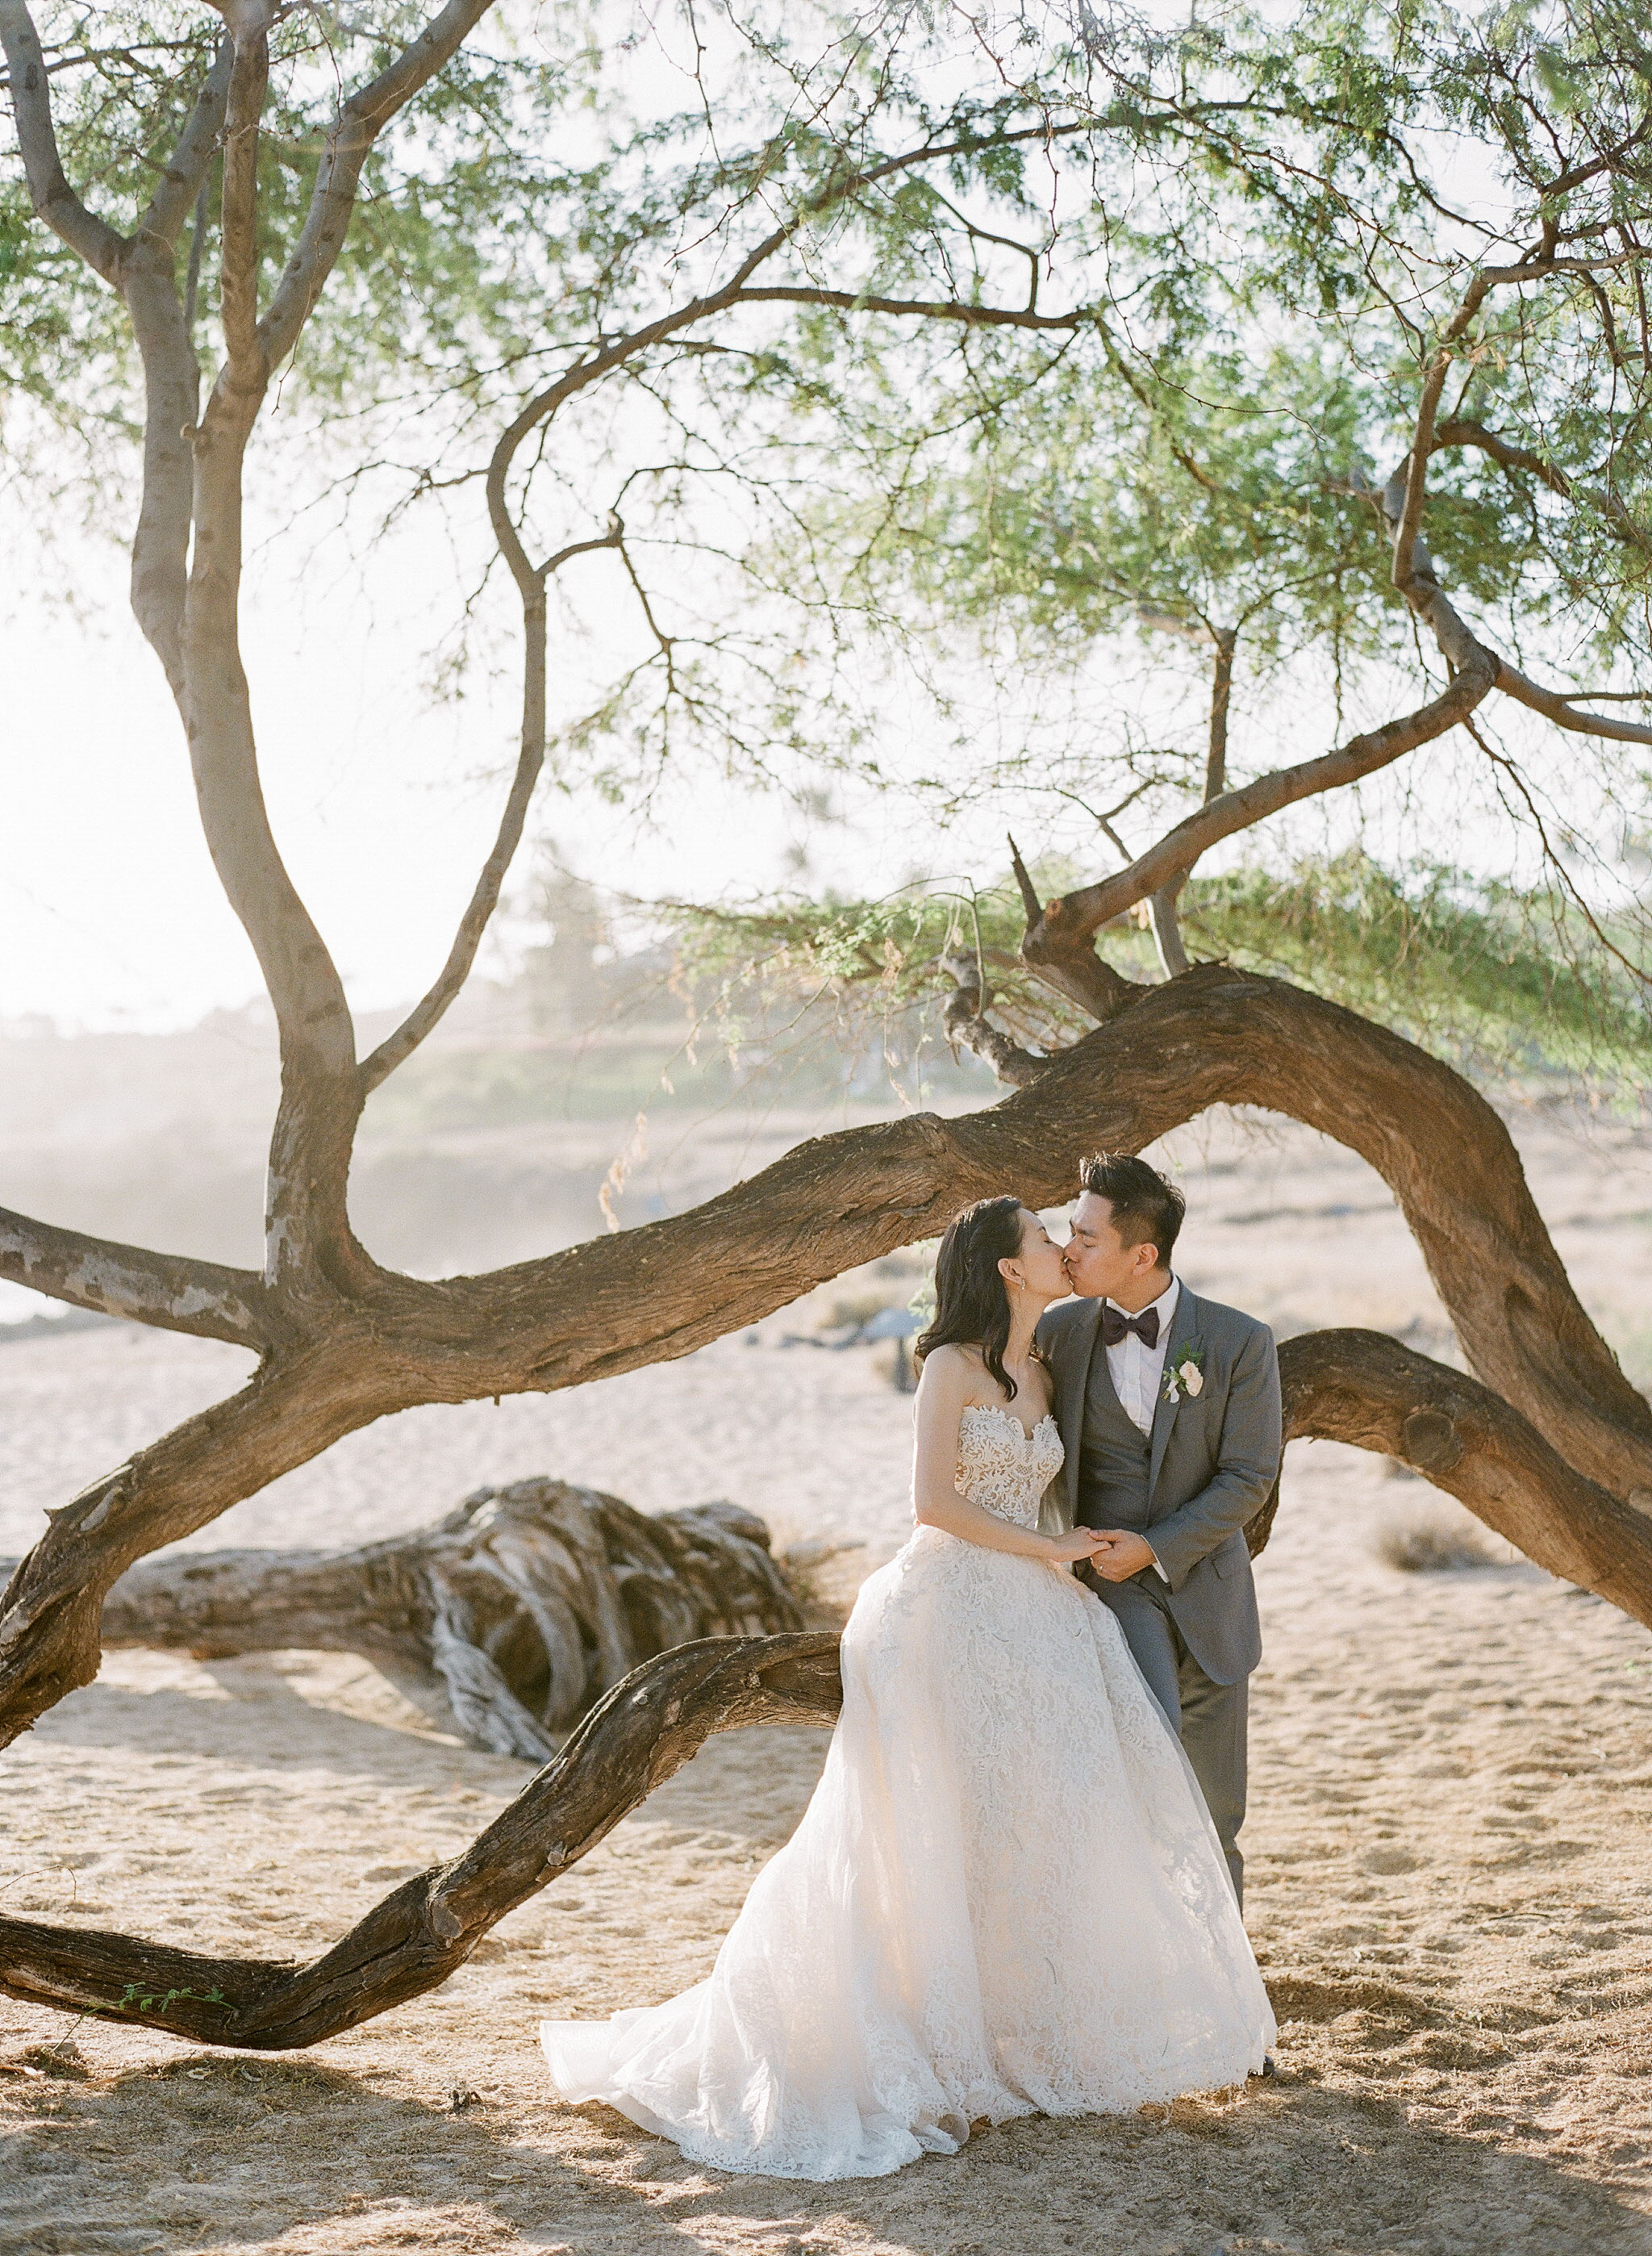 bride and groom hawaiian wedding kiss by beach tree